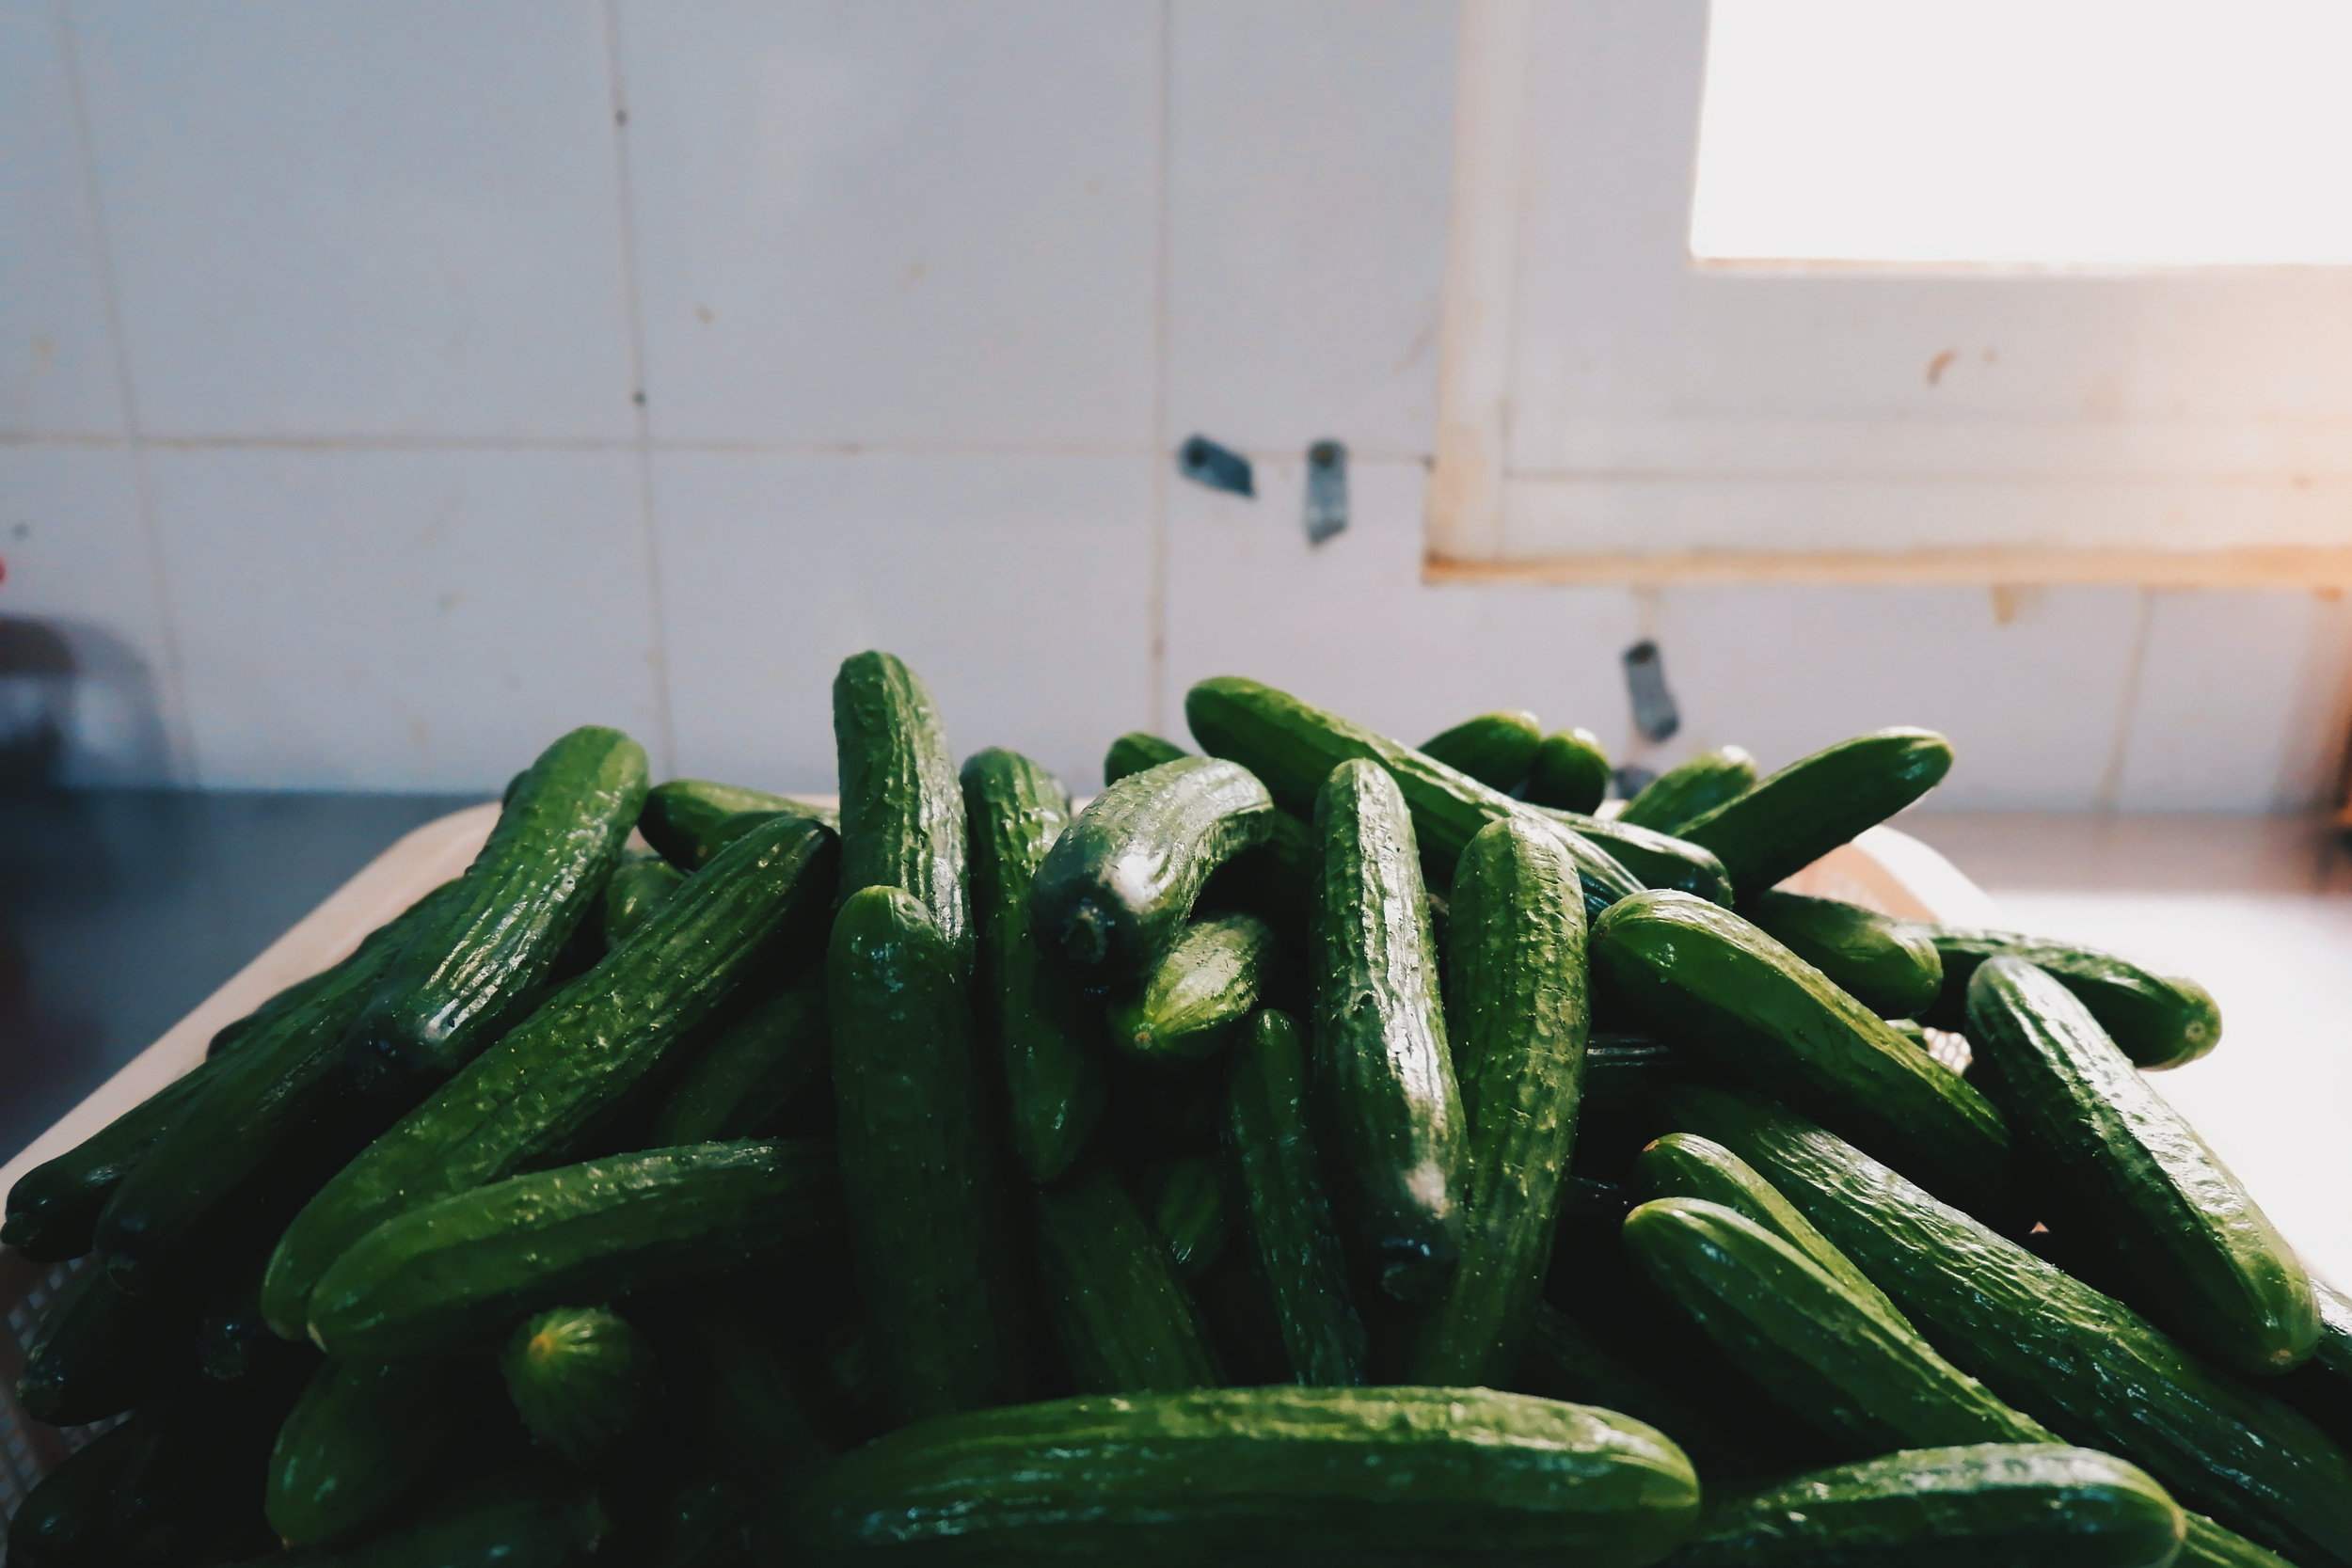 Zucchini - Zucchini is rich in Vitamin A, which may support eye health and the immune system. It is also high in antioxidants and fiber.